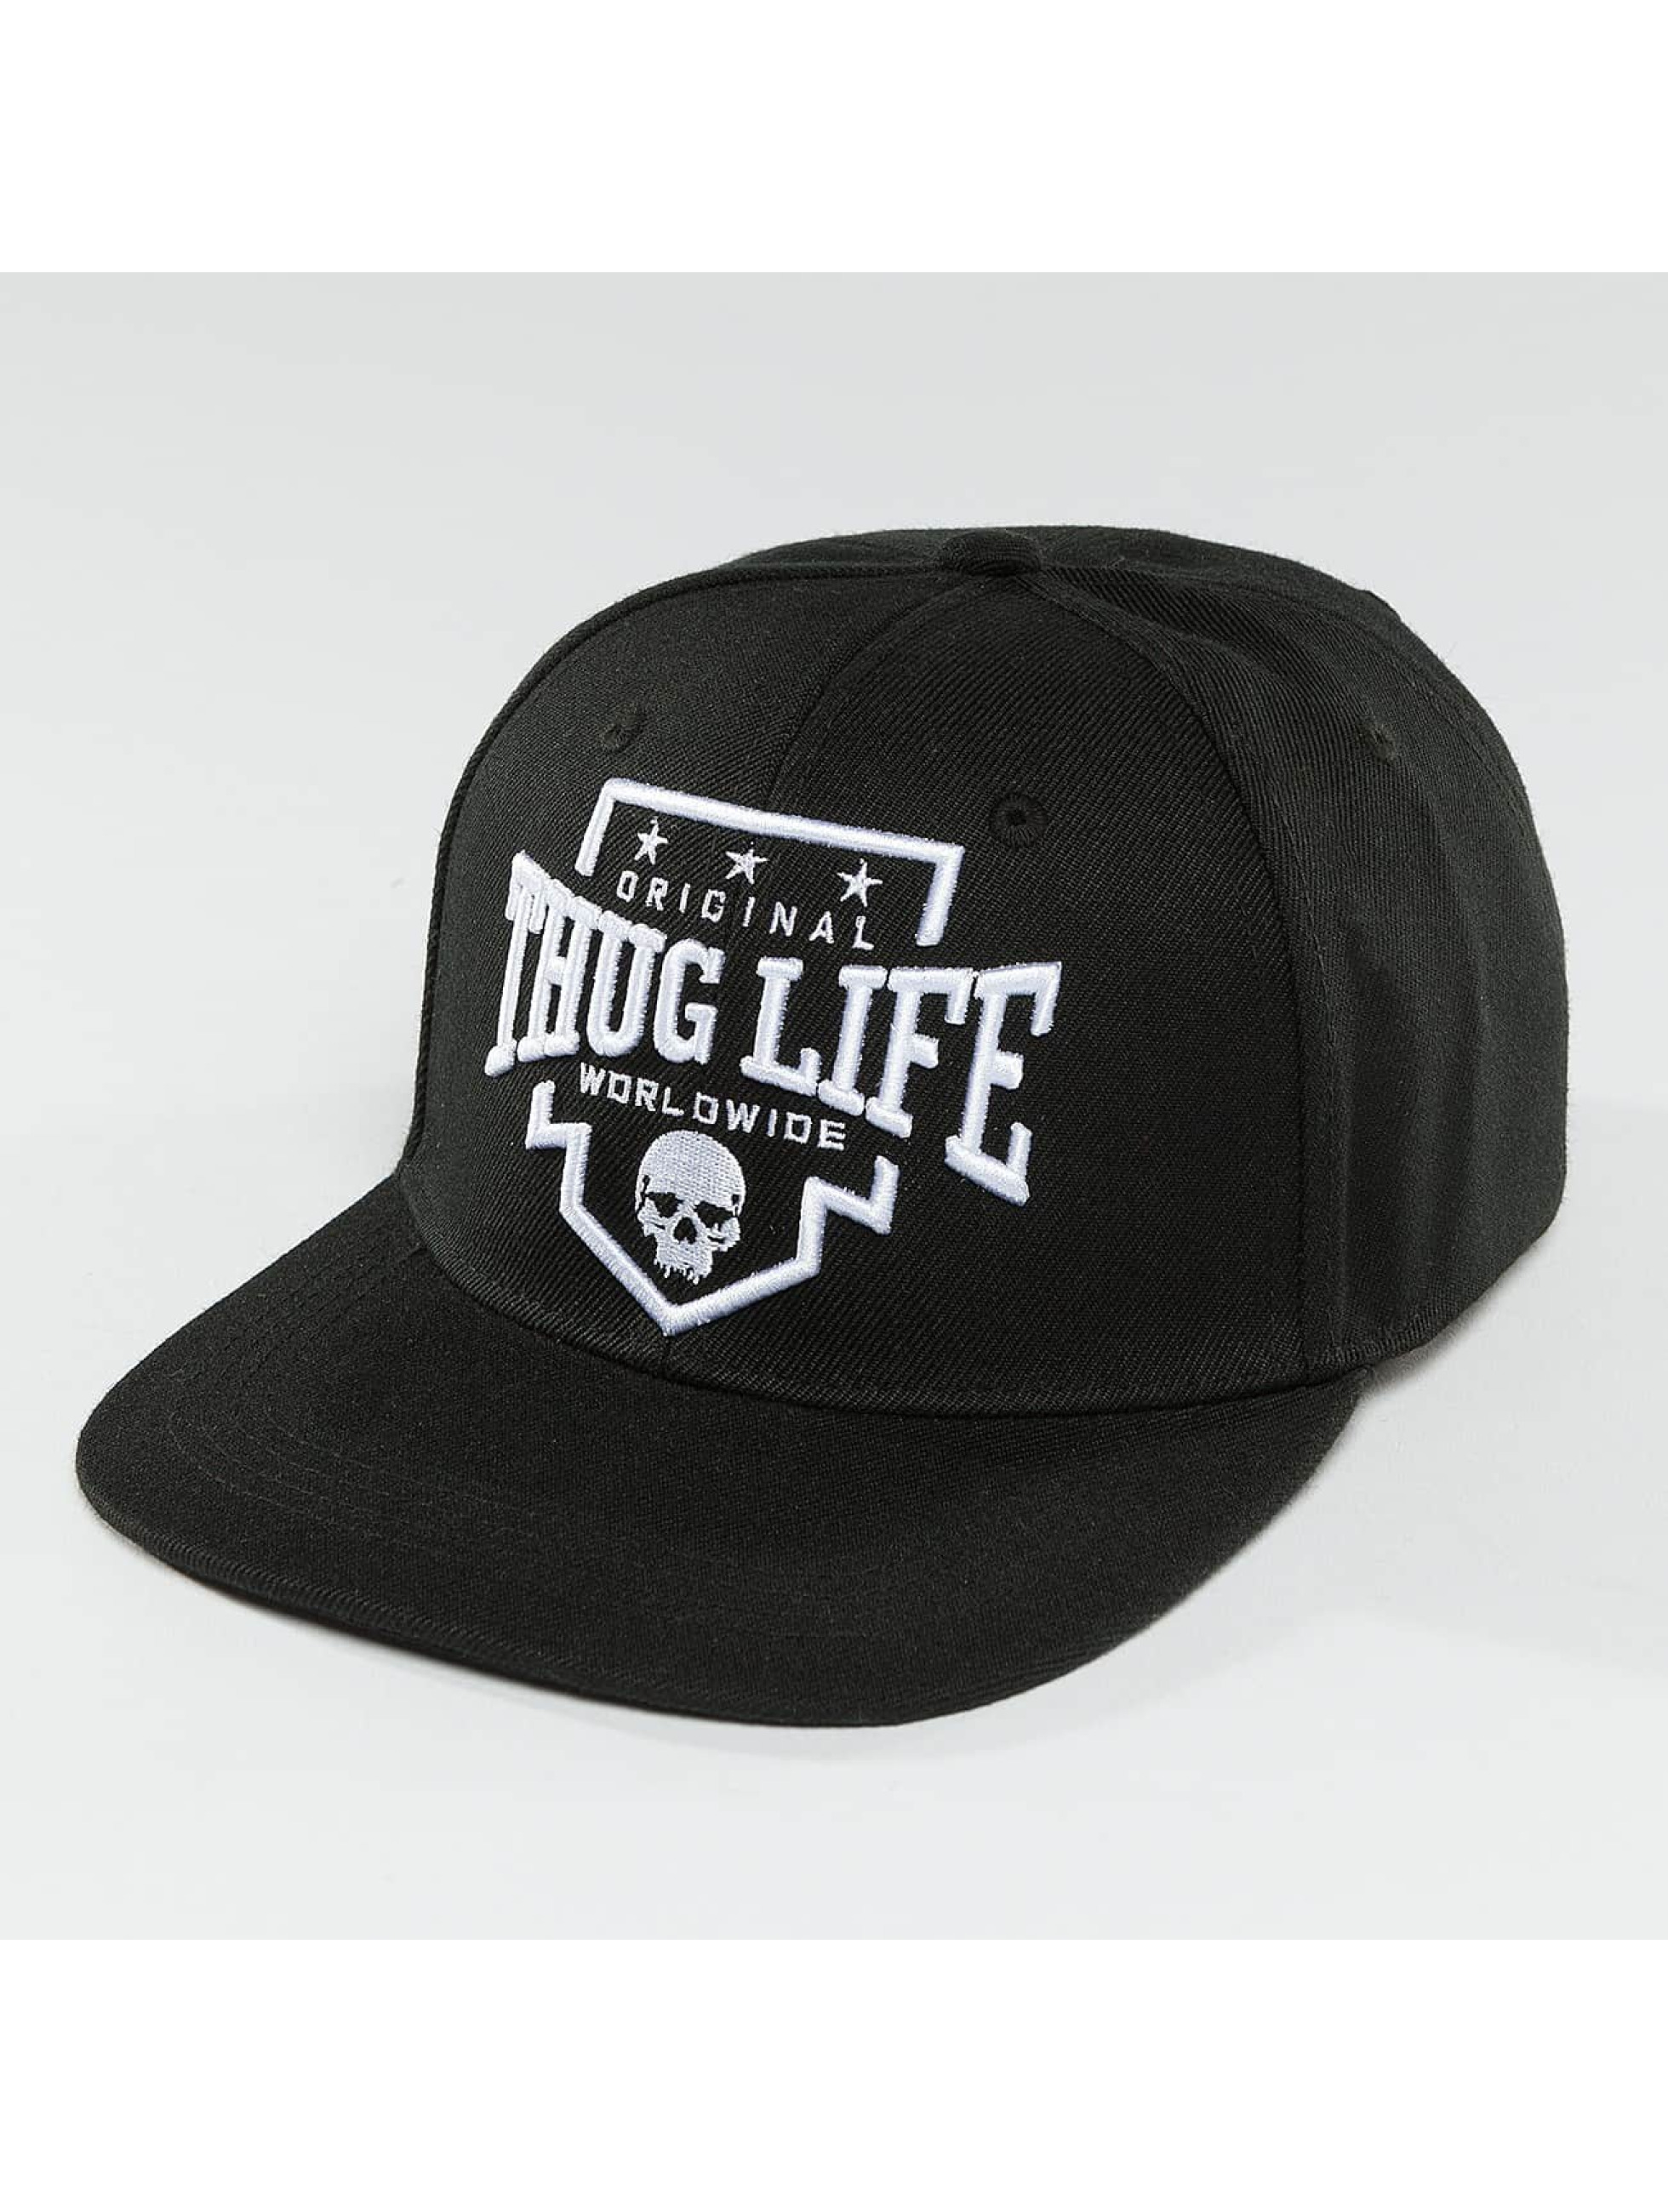 Thug Life / Snapback Cap Worldwide in black Adjustable